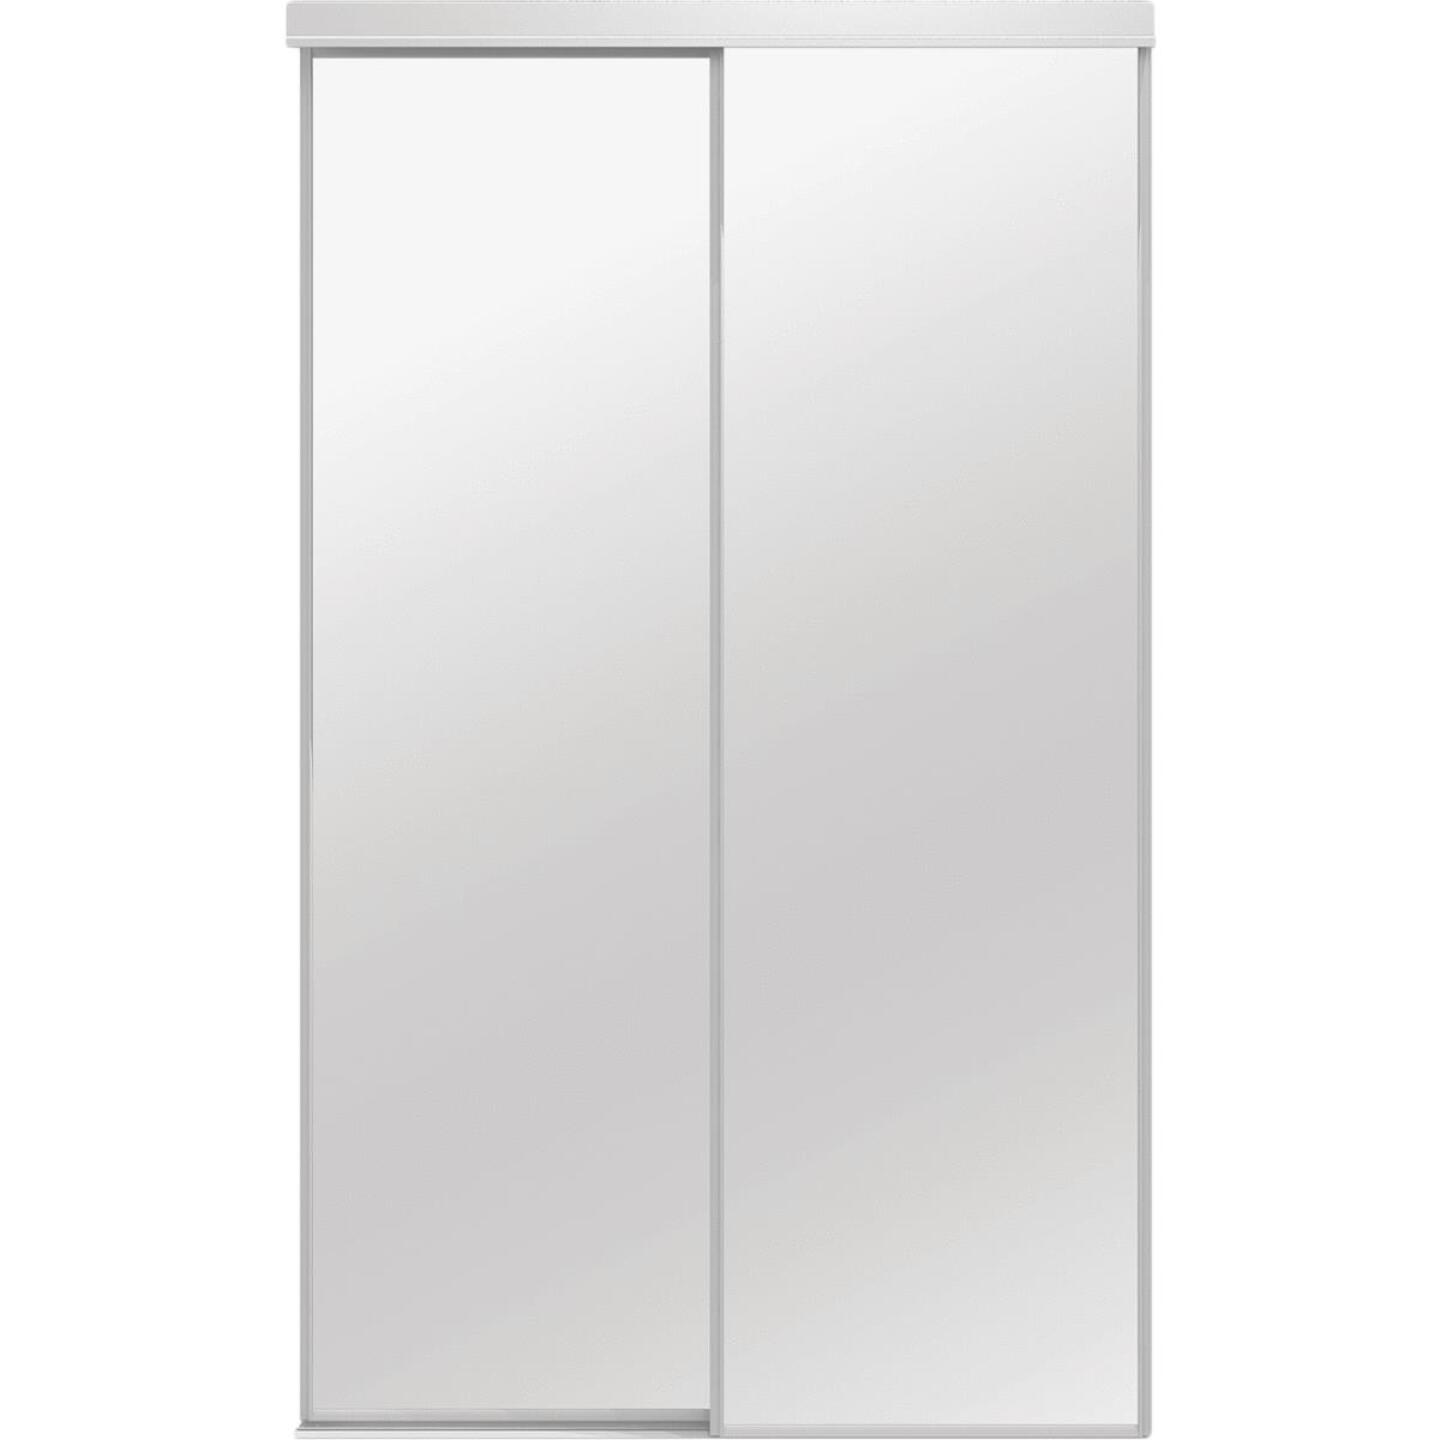 Colonial Elegance Classic 60 In. W x 80-1/2 In. H White Framed Mirrored Sliding Bypass Door Image 1